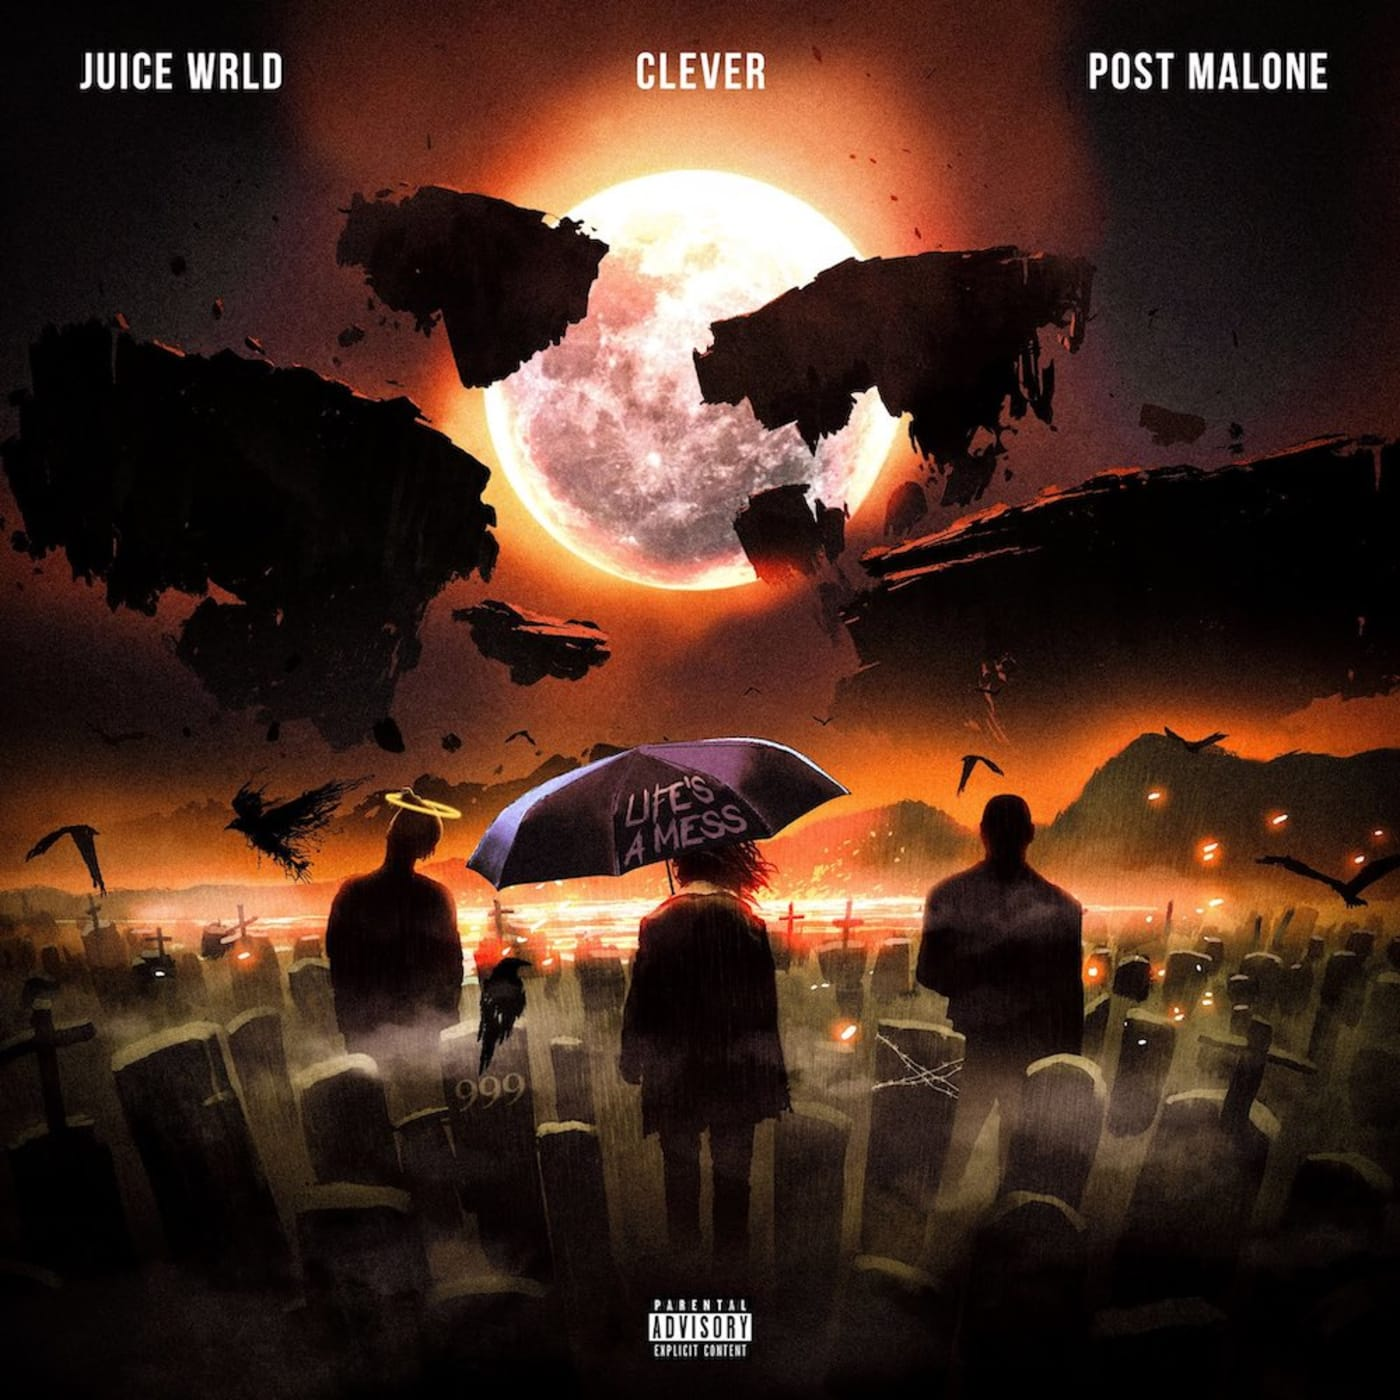 """Clever """"Life's a Mess"""" f/ Juice WRLD and Post Malone"""